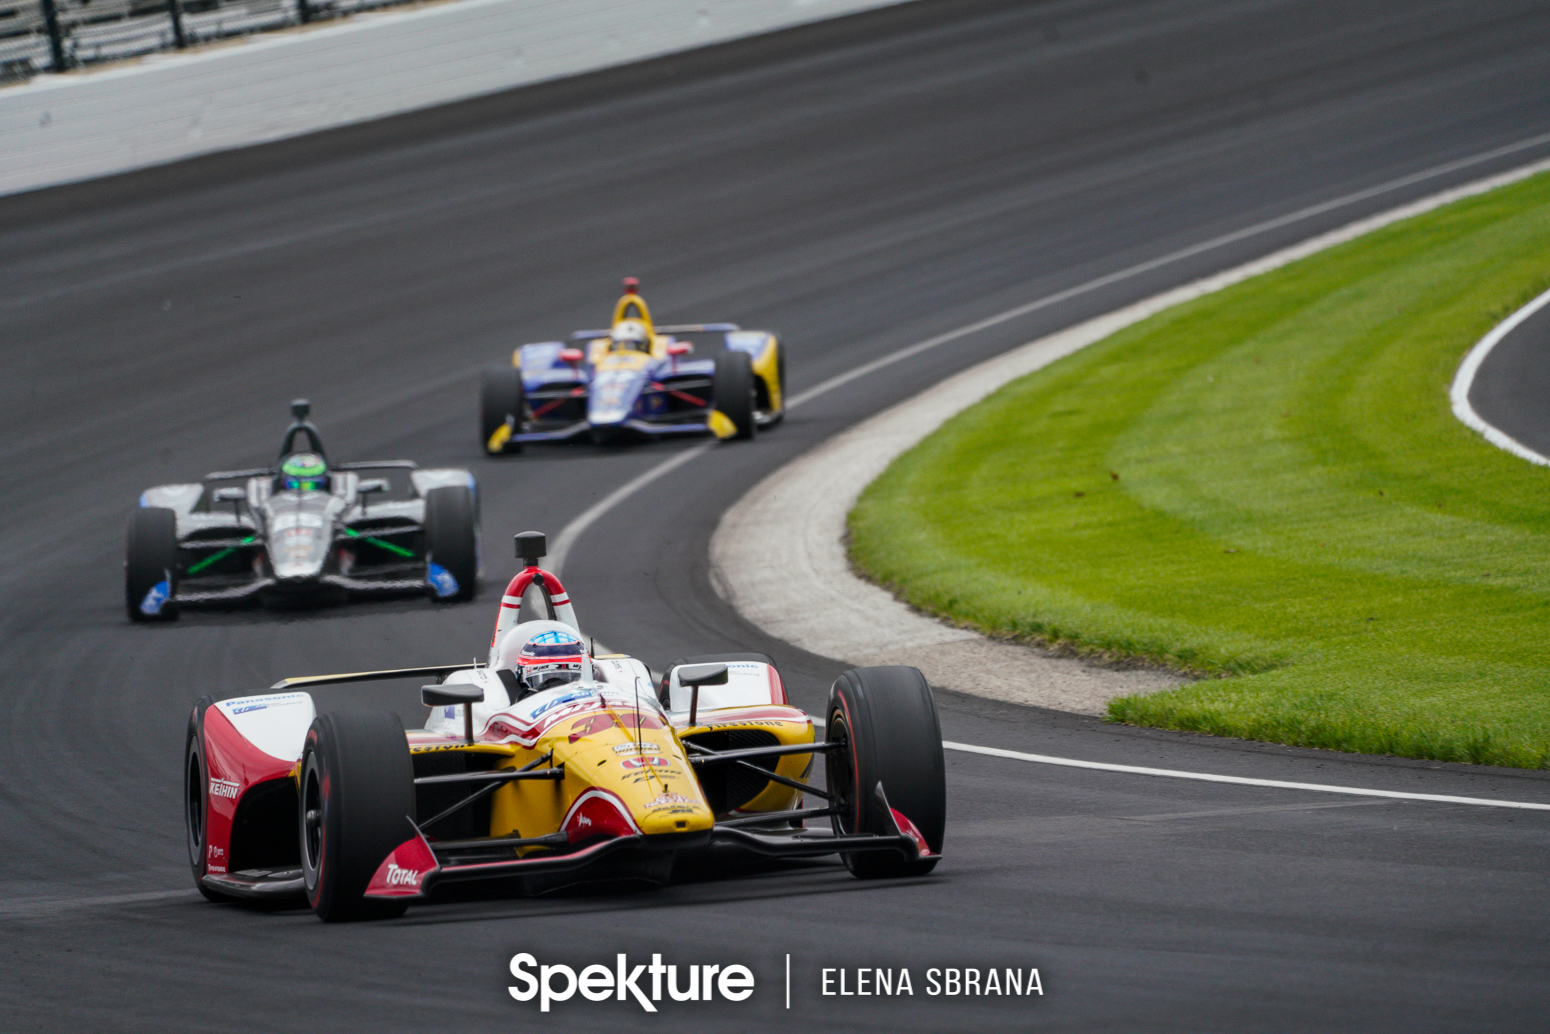 Earchphoto Sports - Takuma Sato leading a group of cars on the IMS oval